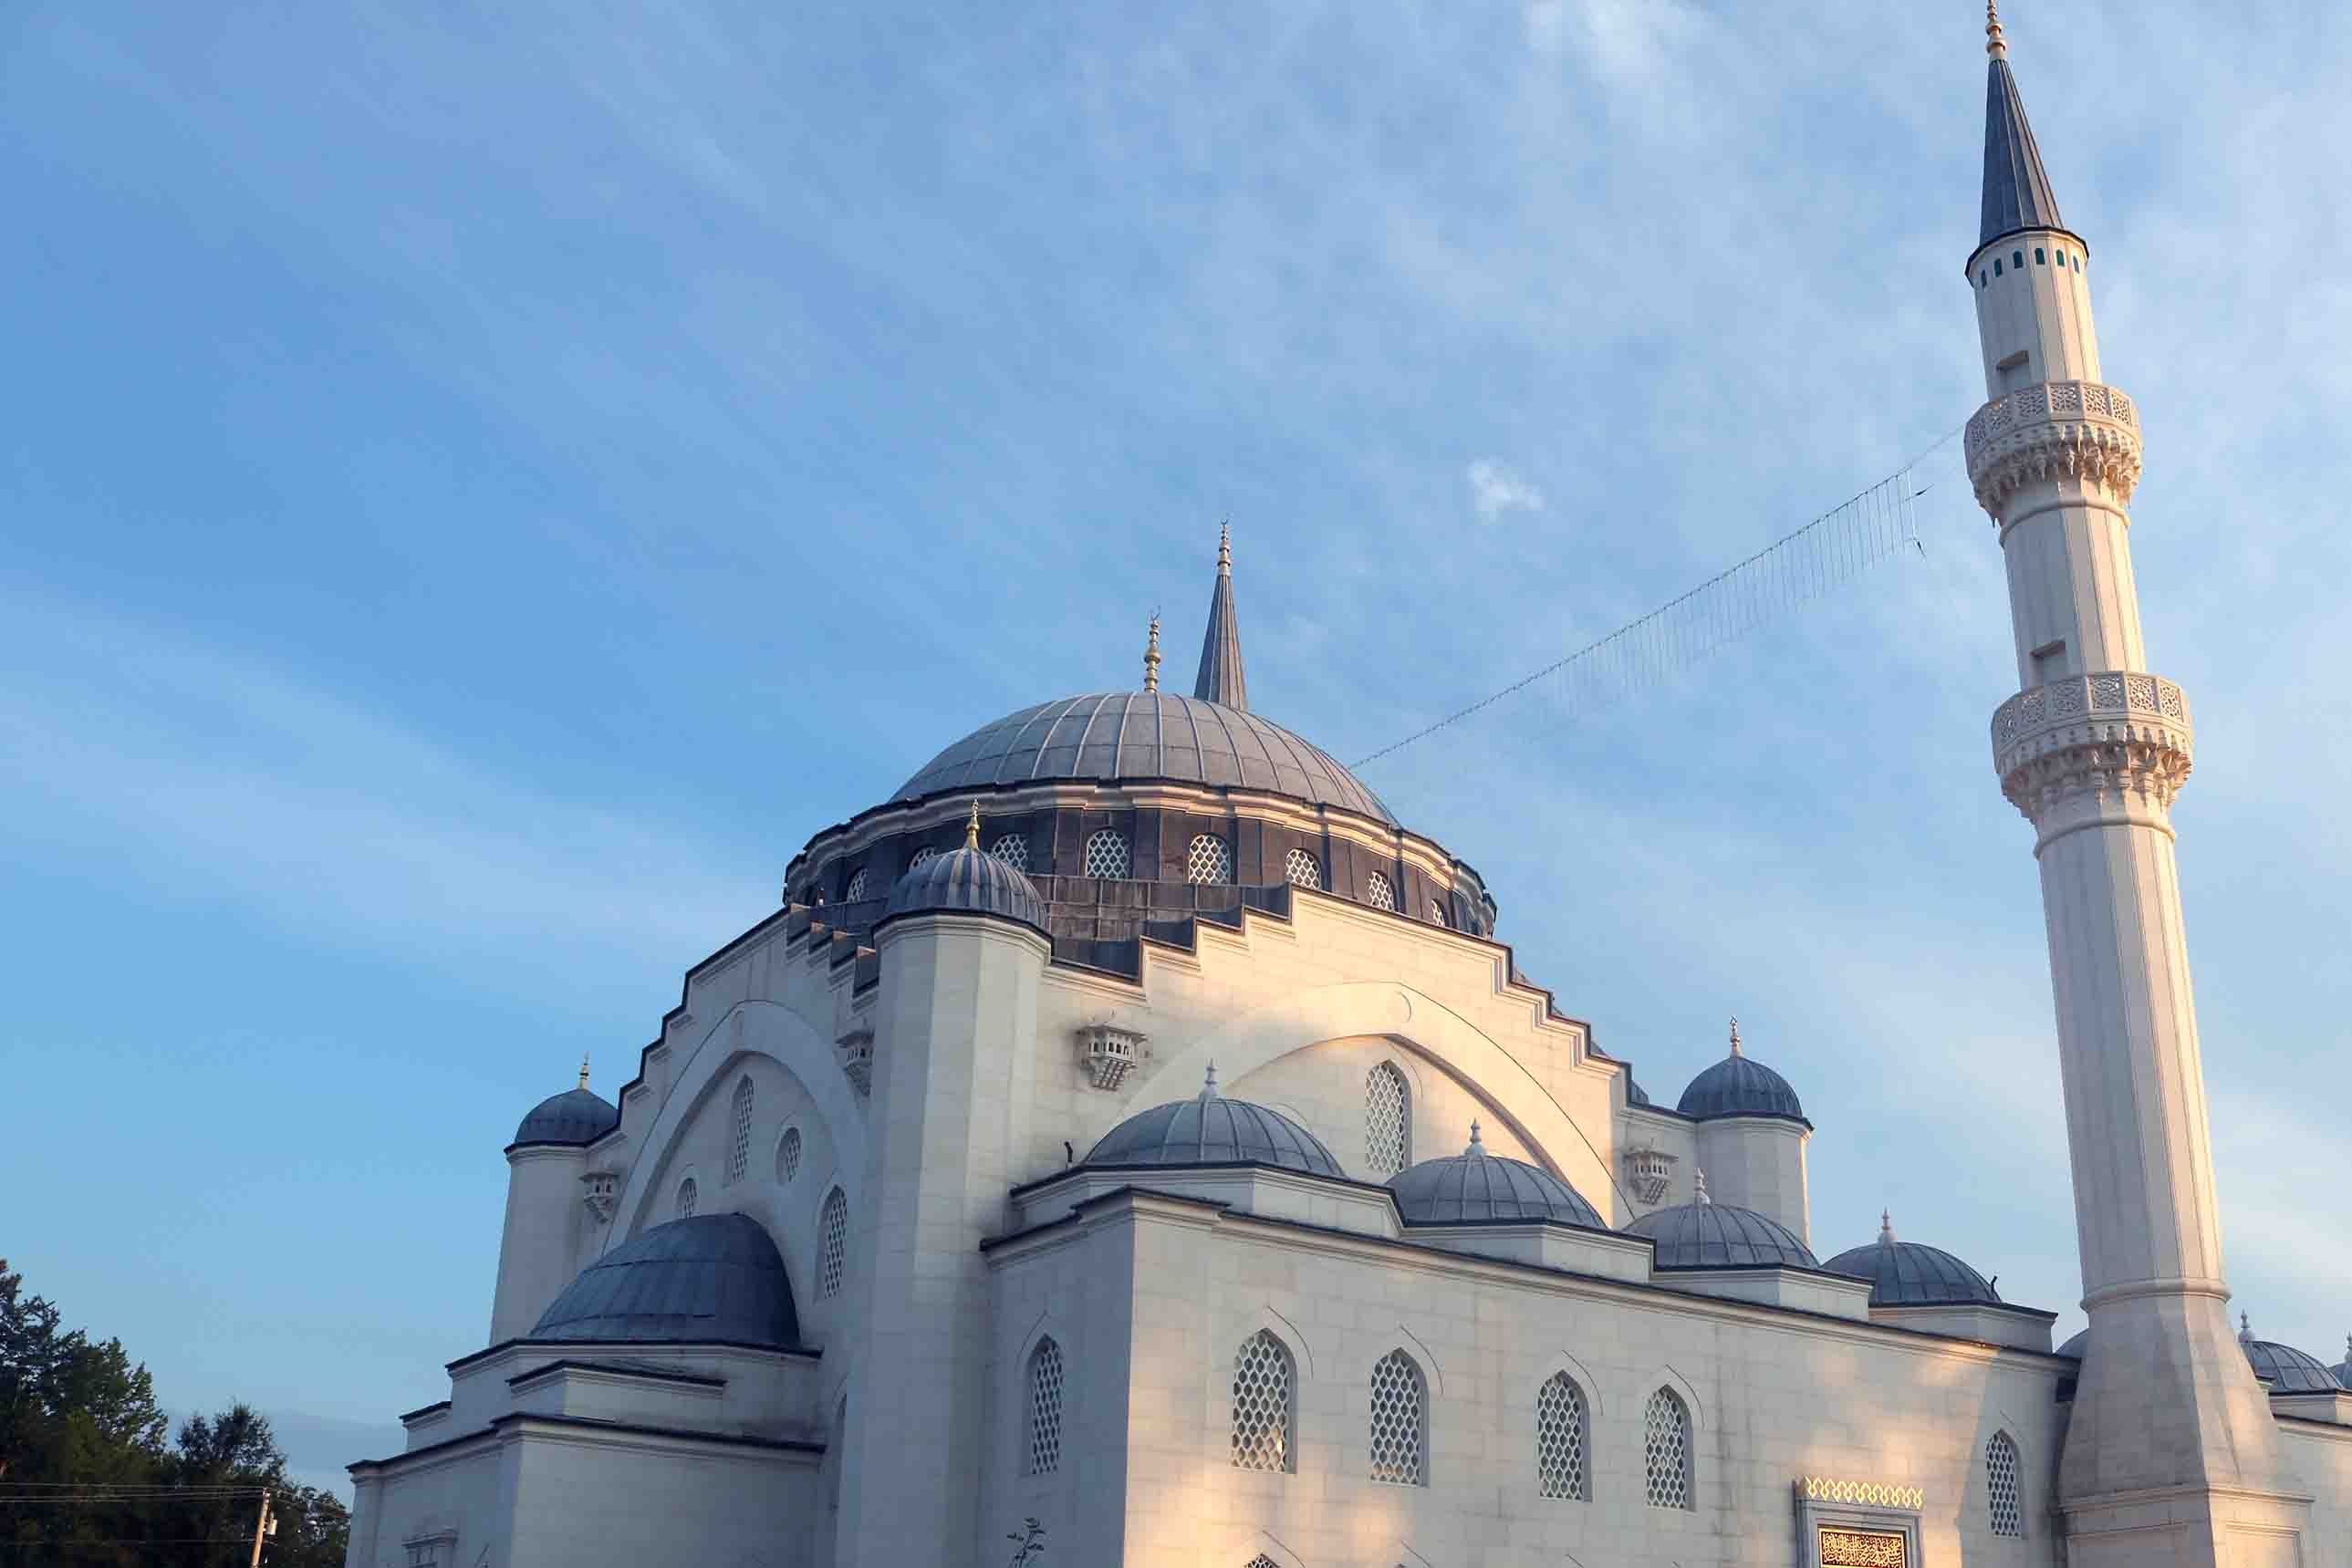 A grand mosque with a large blue dome